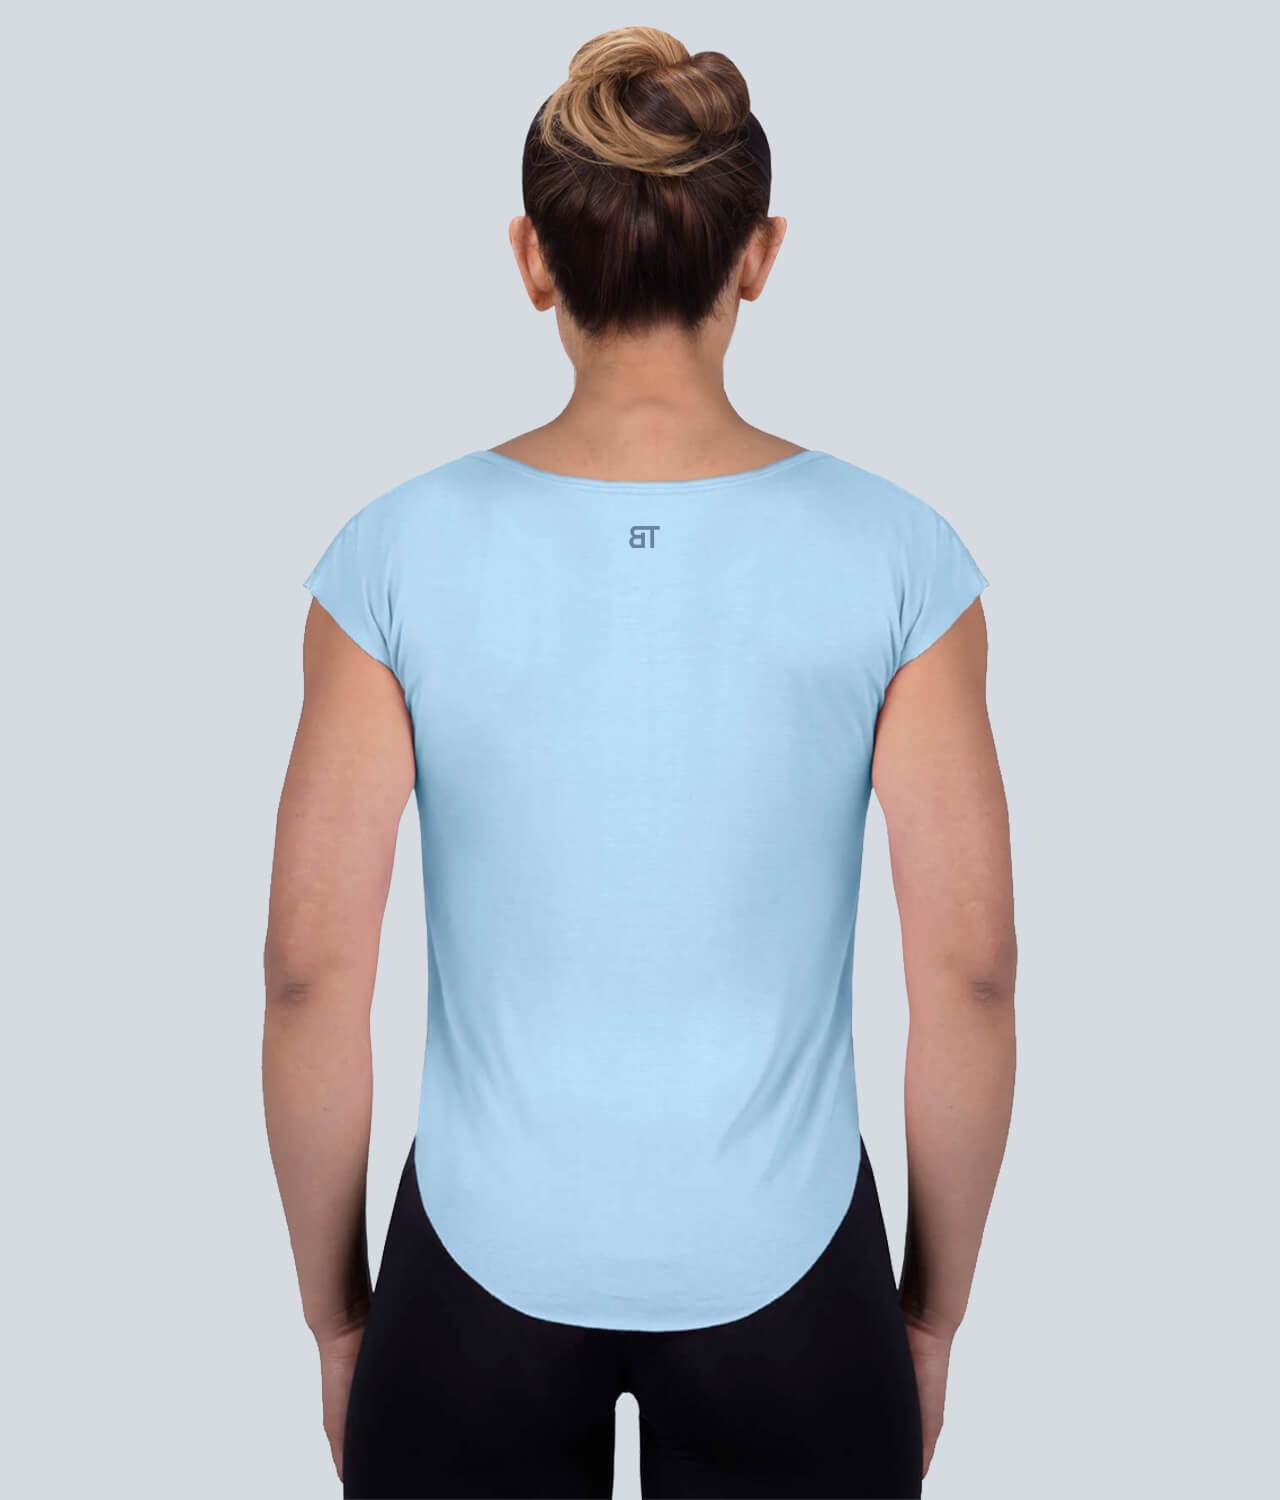 Born Tough United Kingdom Capped Sheer Accentuated Seams Blue Sleeveless Gym Workout Shirt for Women